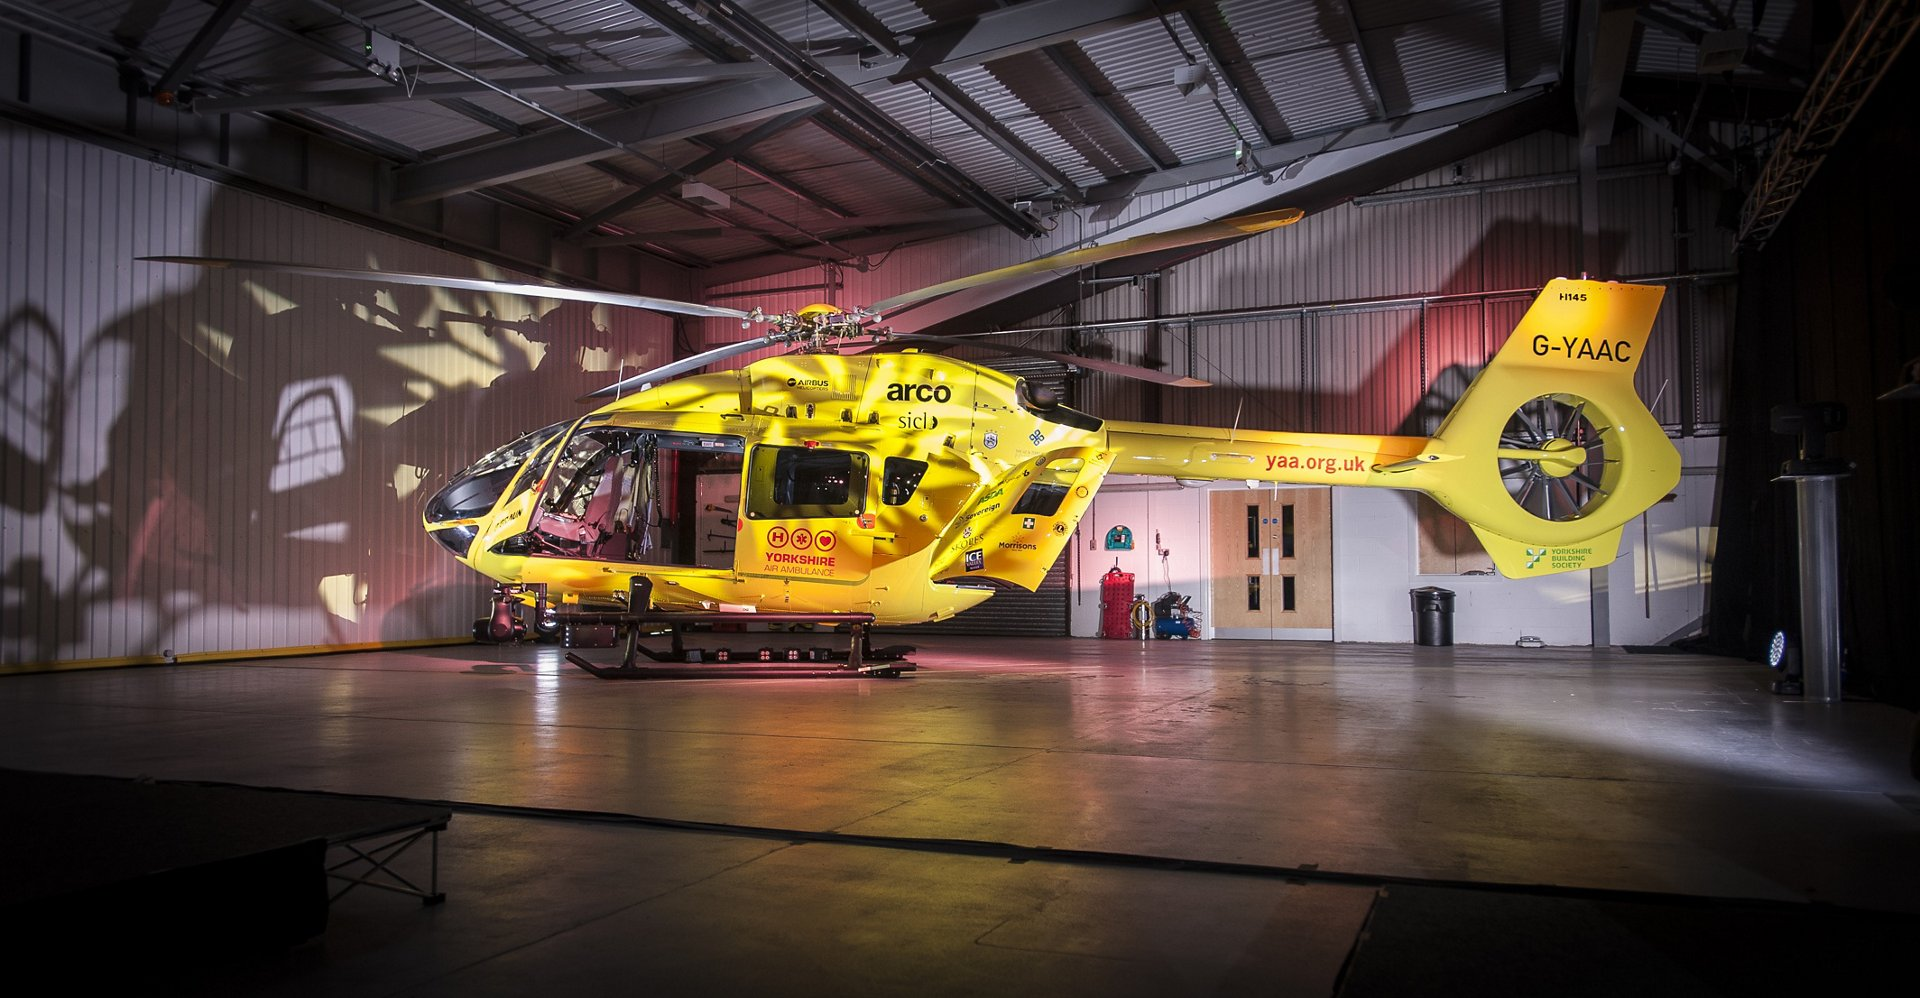 Pride and Passion: Yorkshire Air Ambulance Presents its New H145